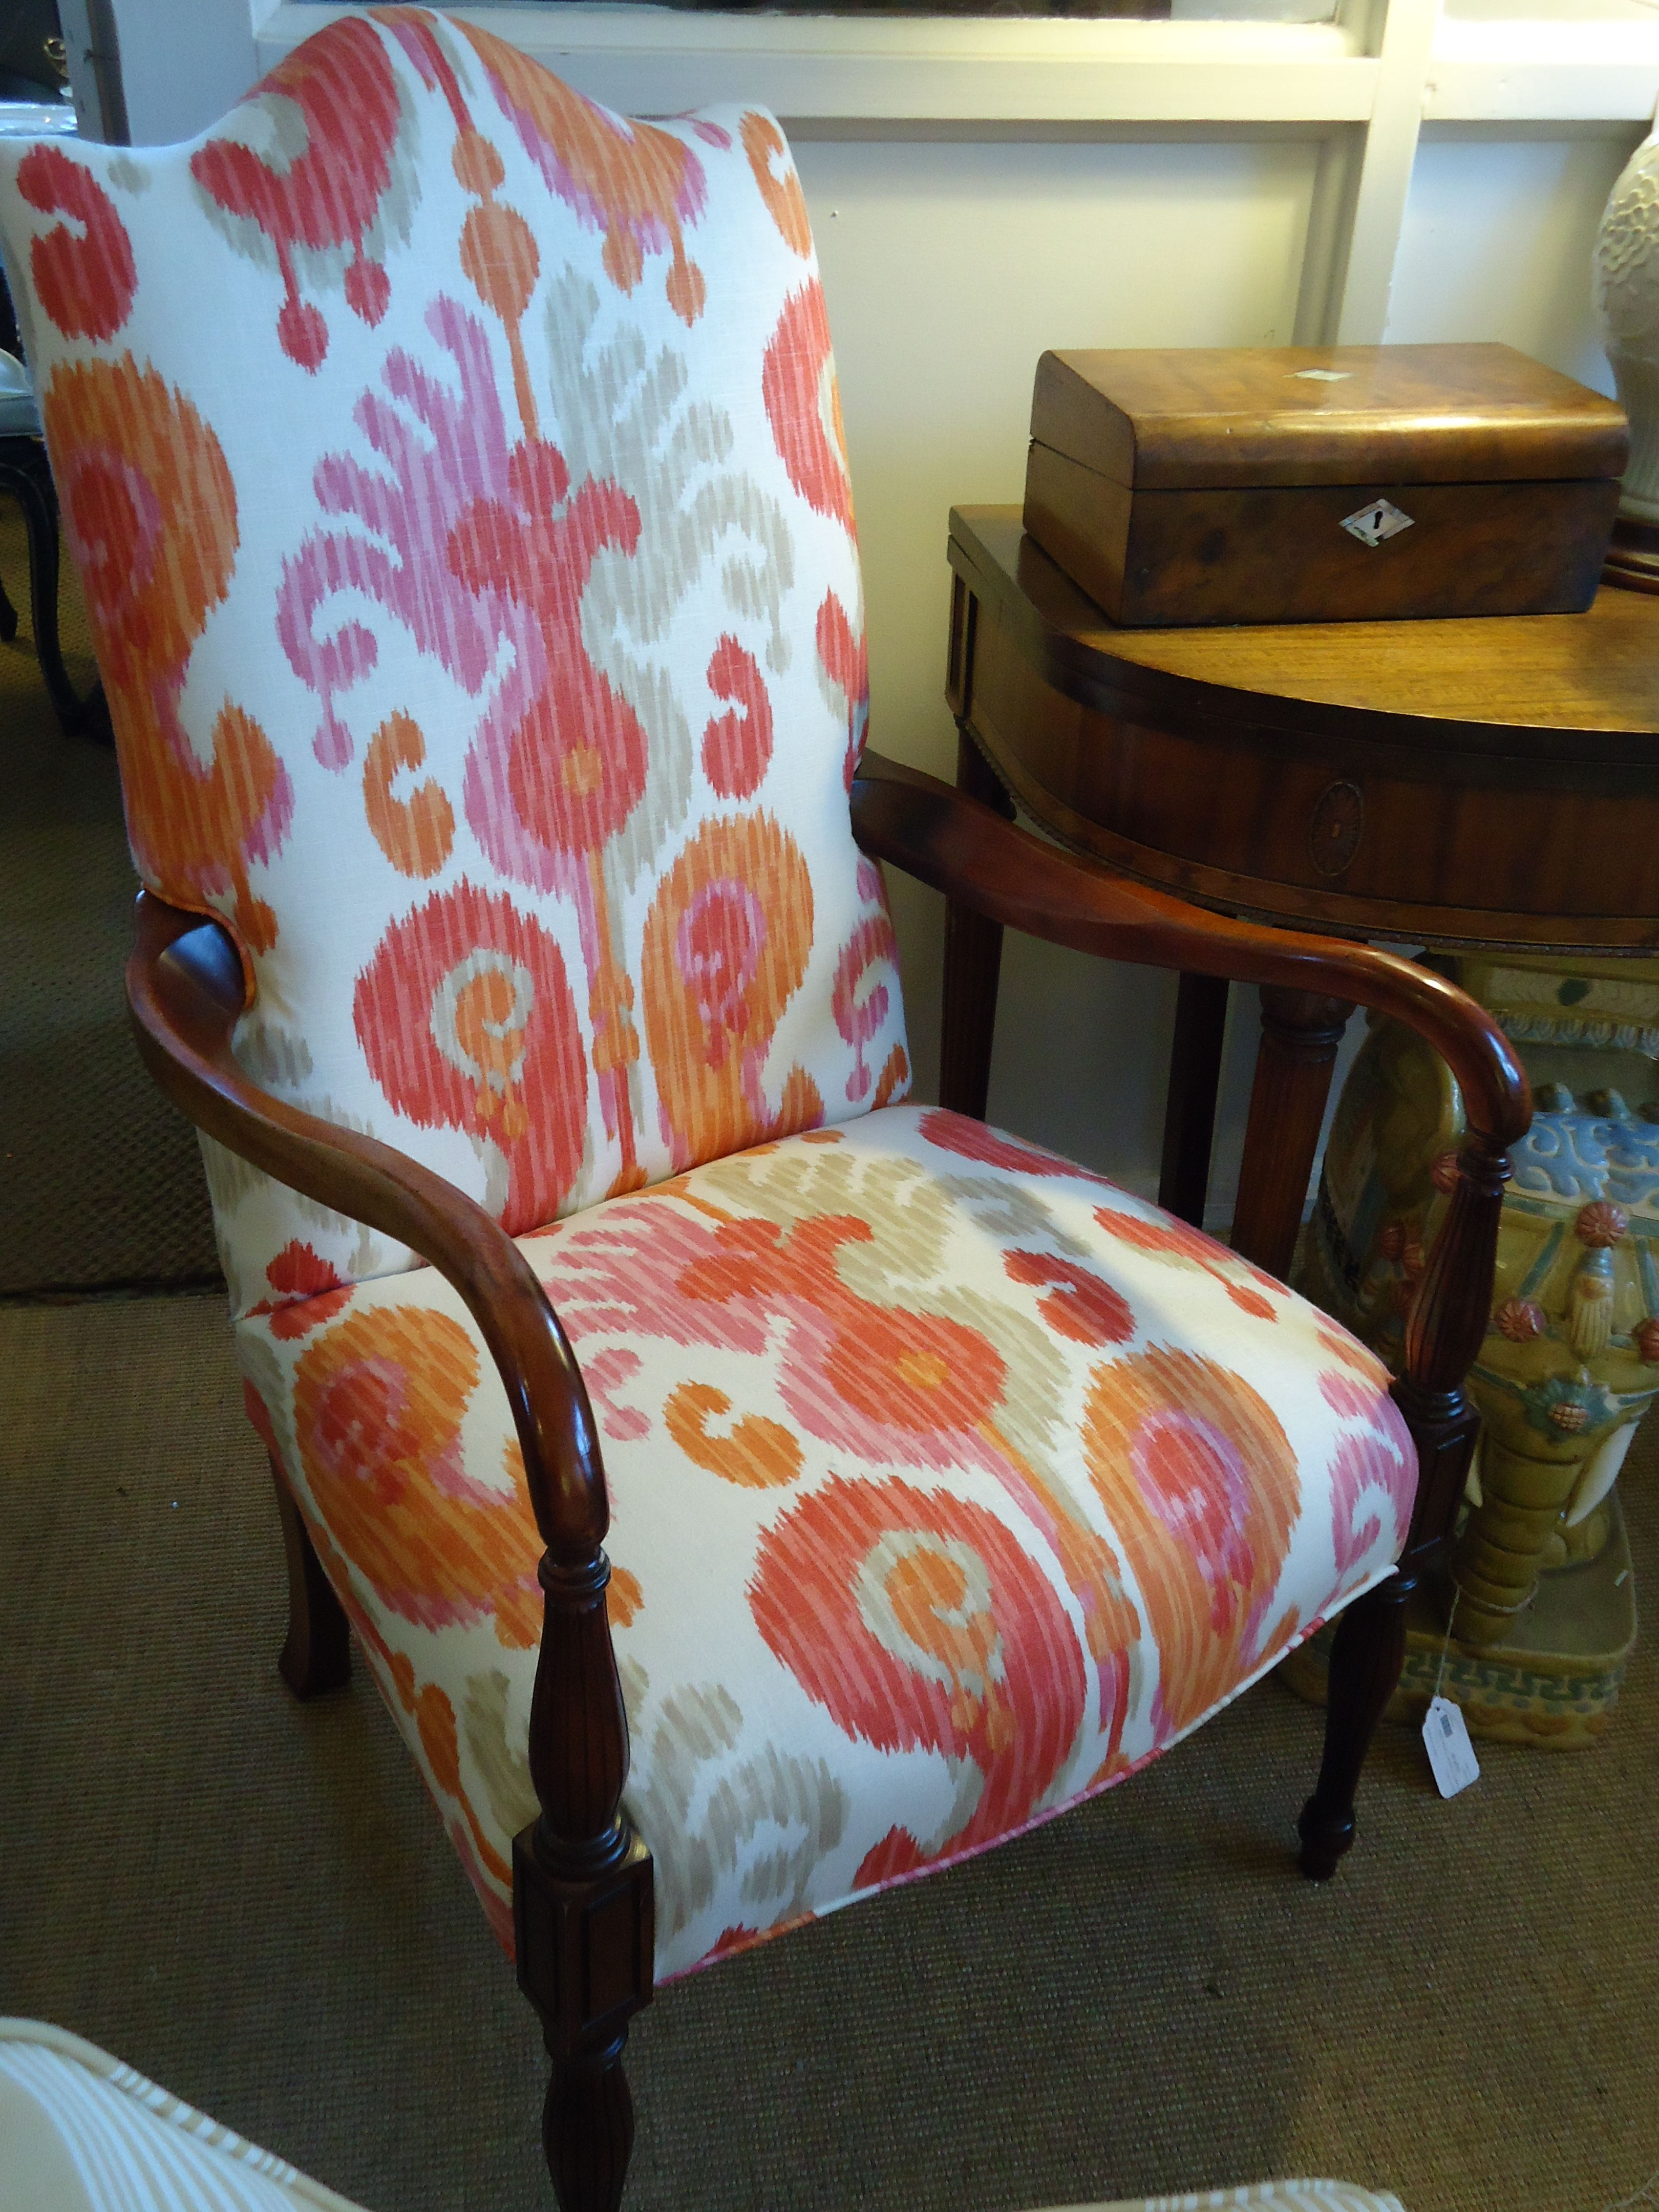 I Want To Update A Boring Martha Washington Chair. This